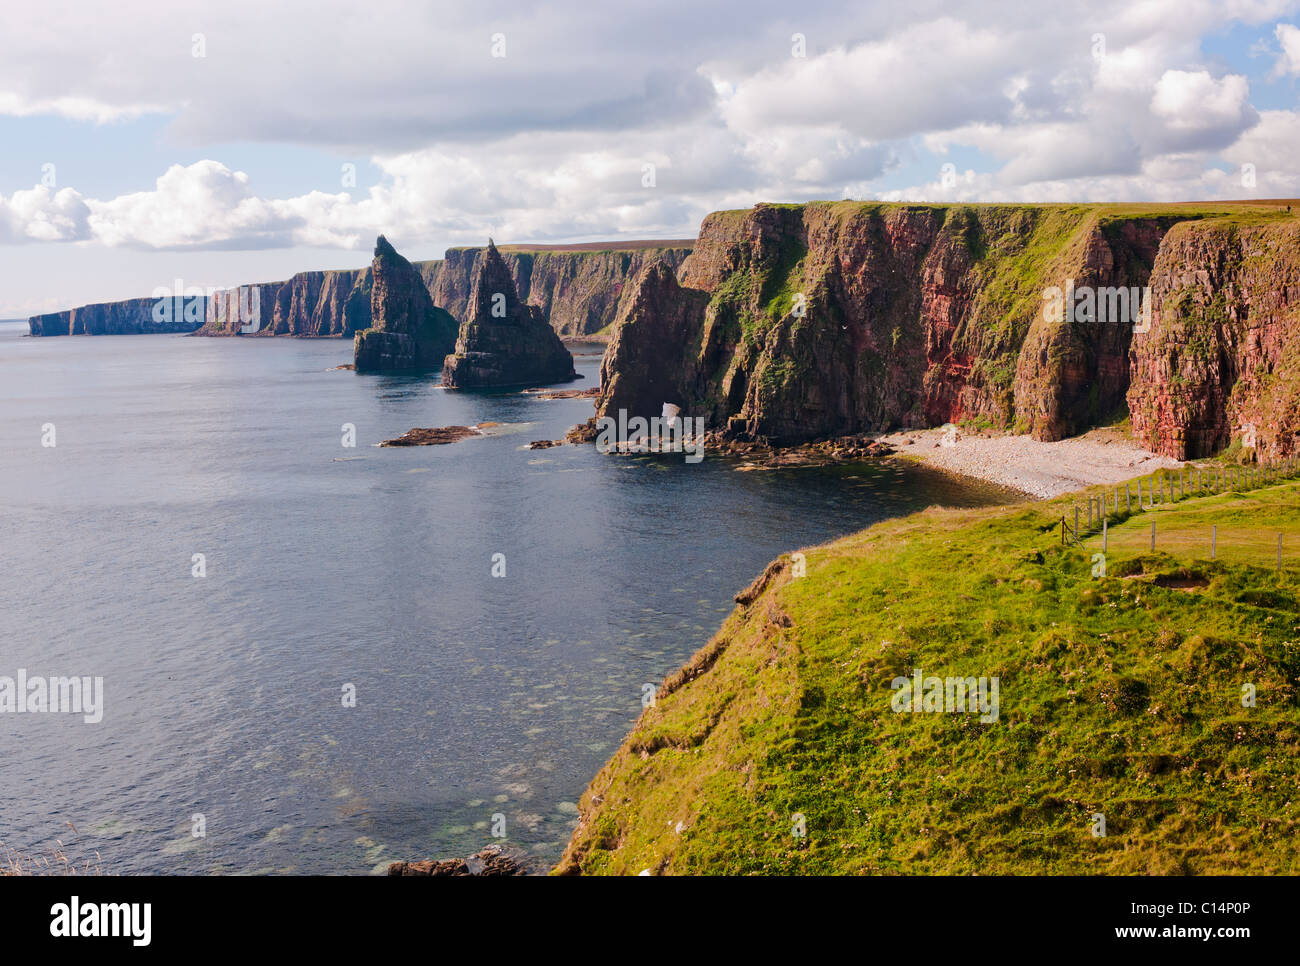 DUNCANSBY HEAD SCOTLAND UNITED KINGDOM - Stock Image